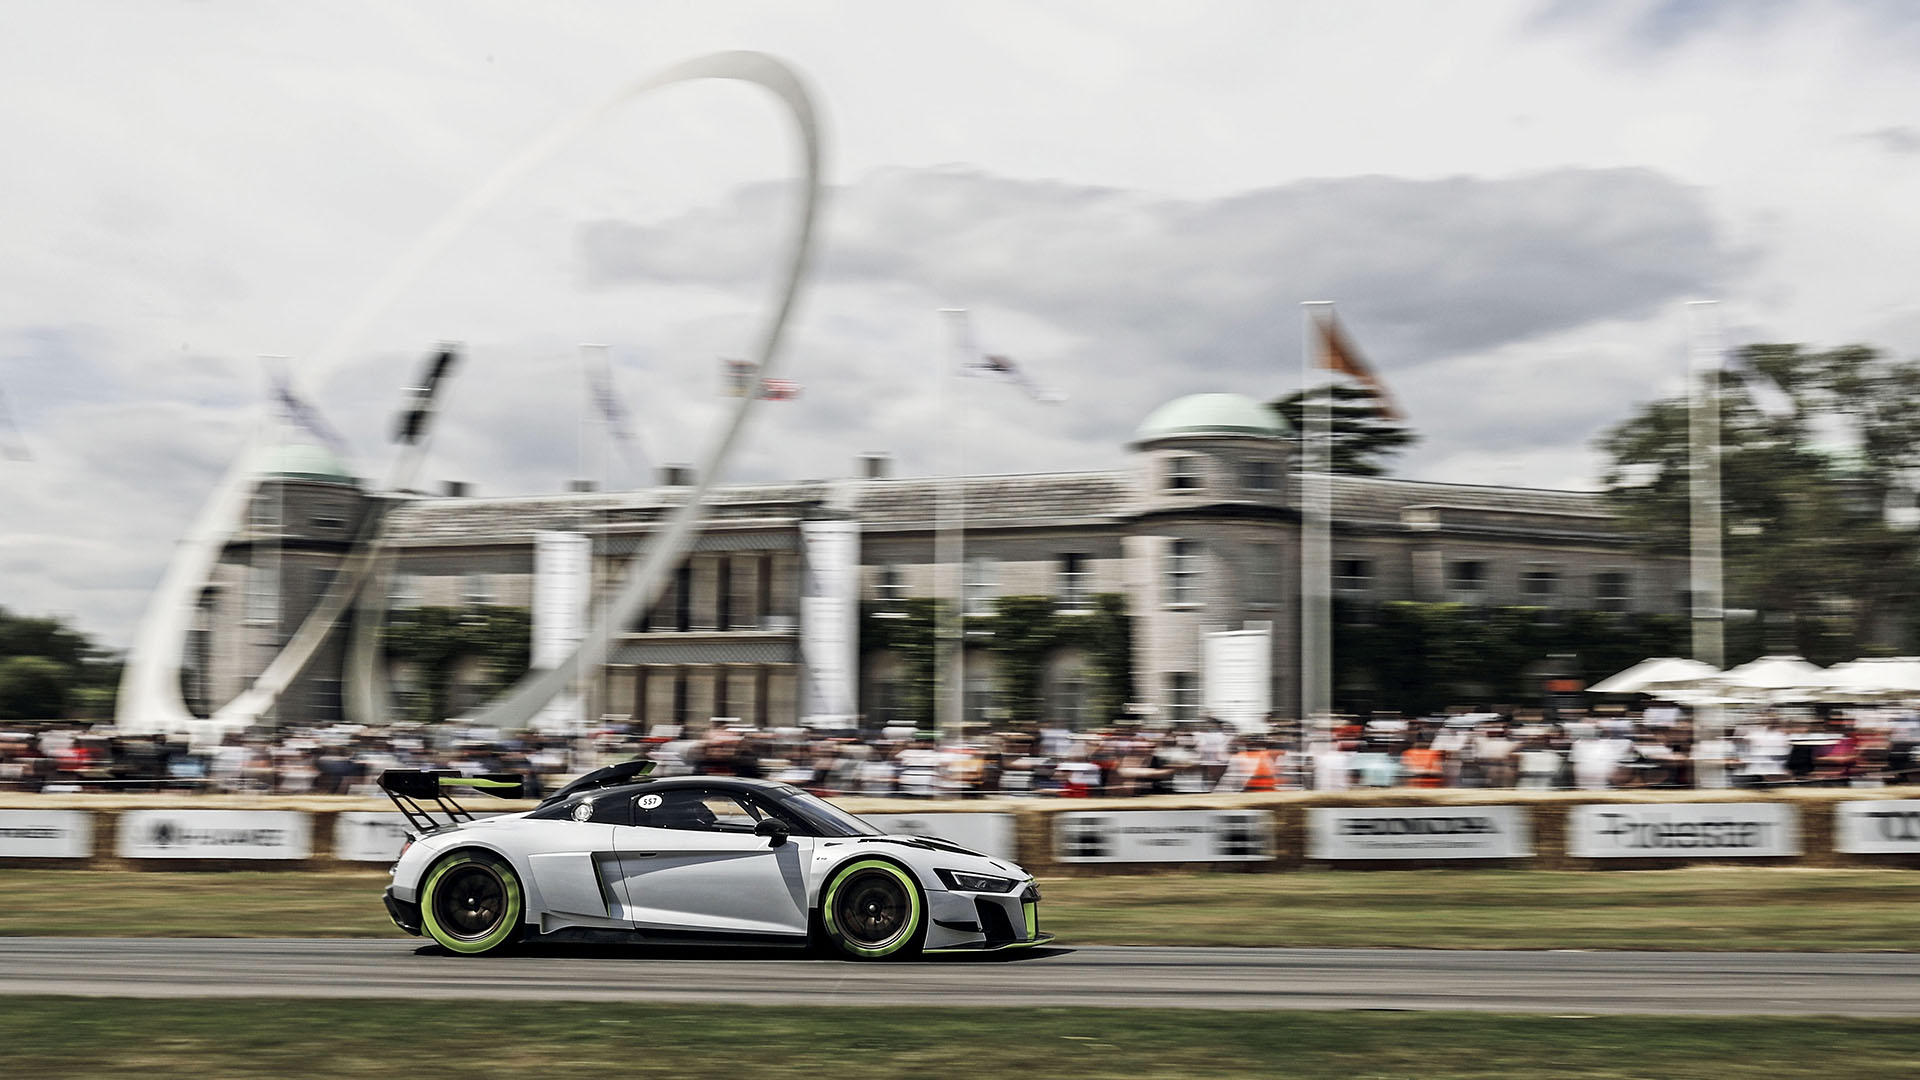 Audi R8 LMS GT2 on the racetrack